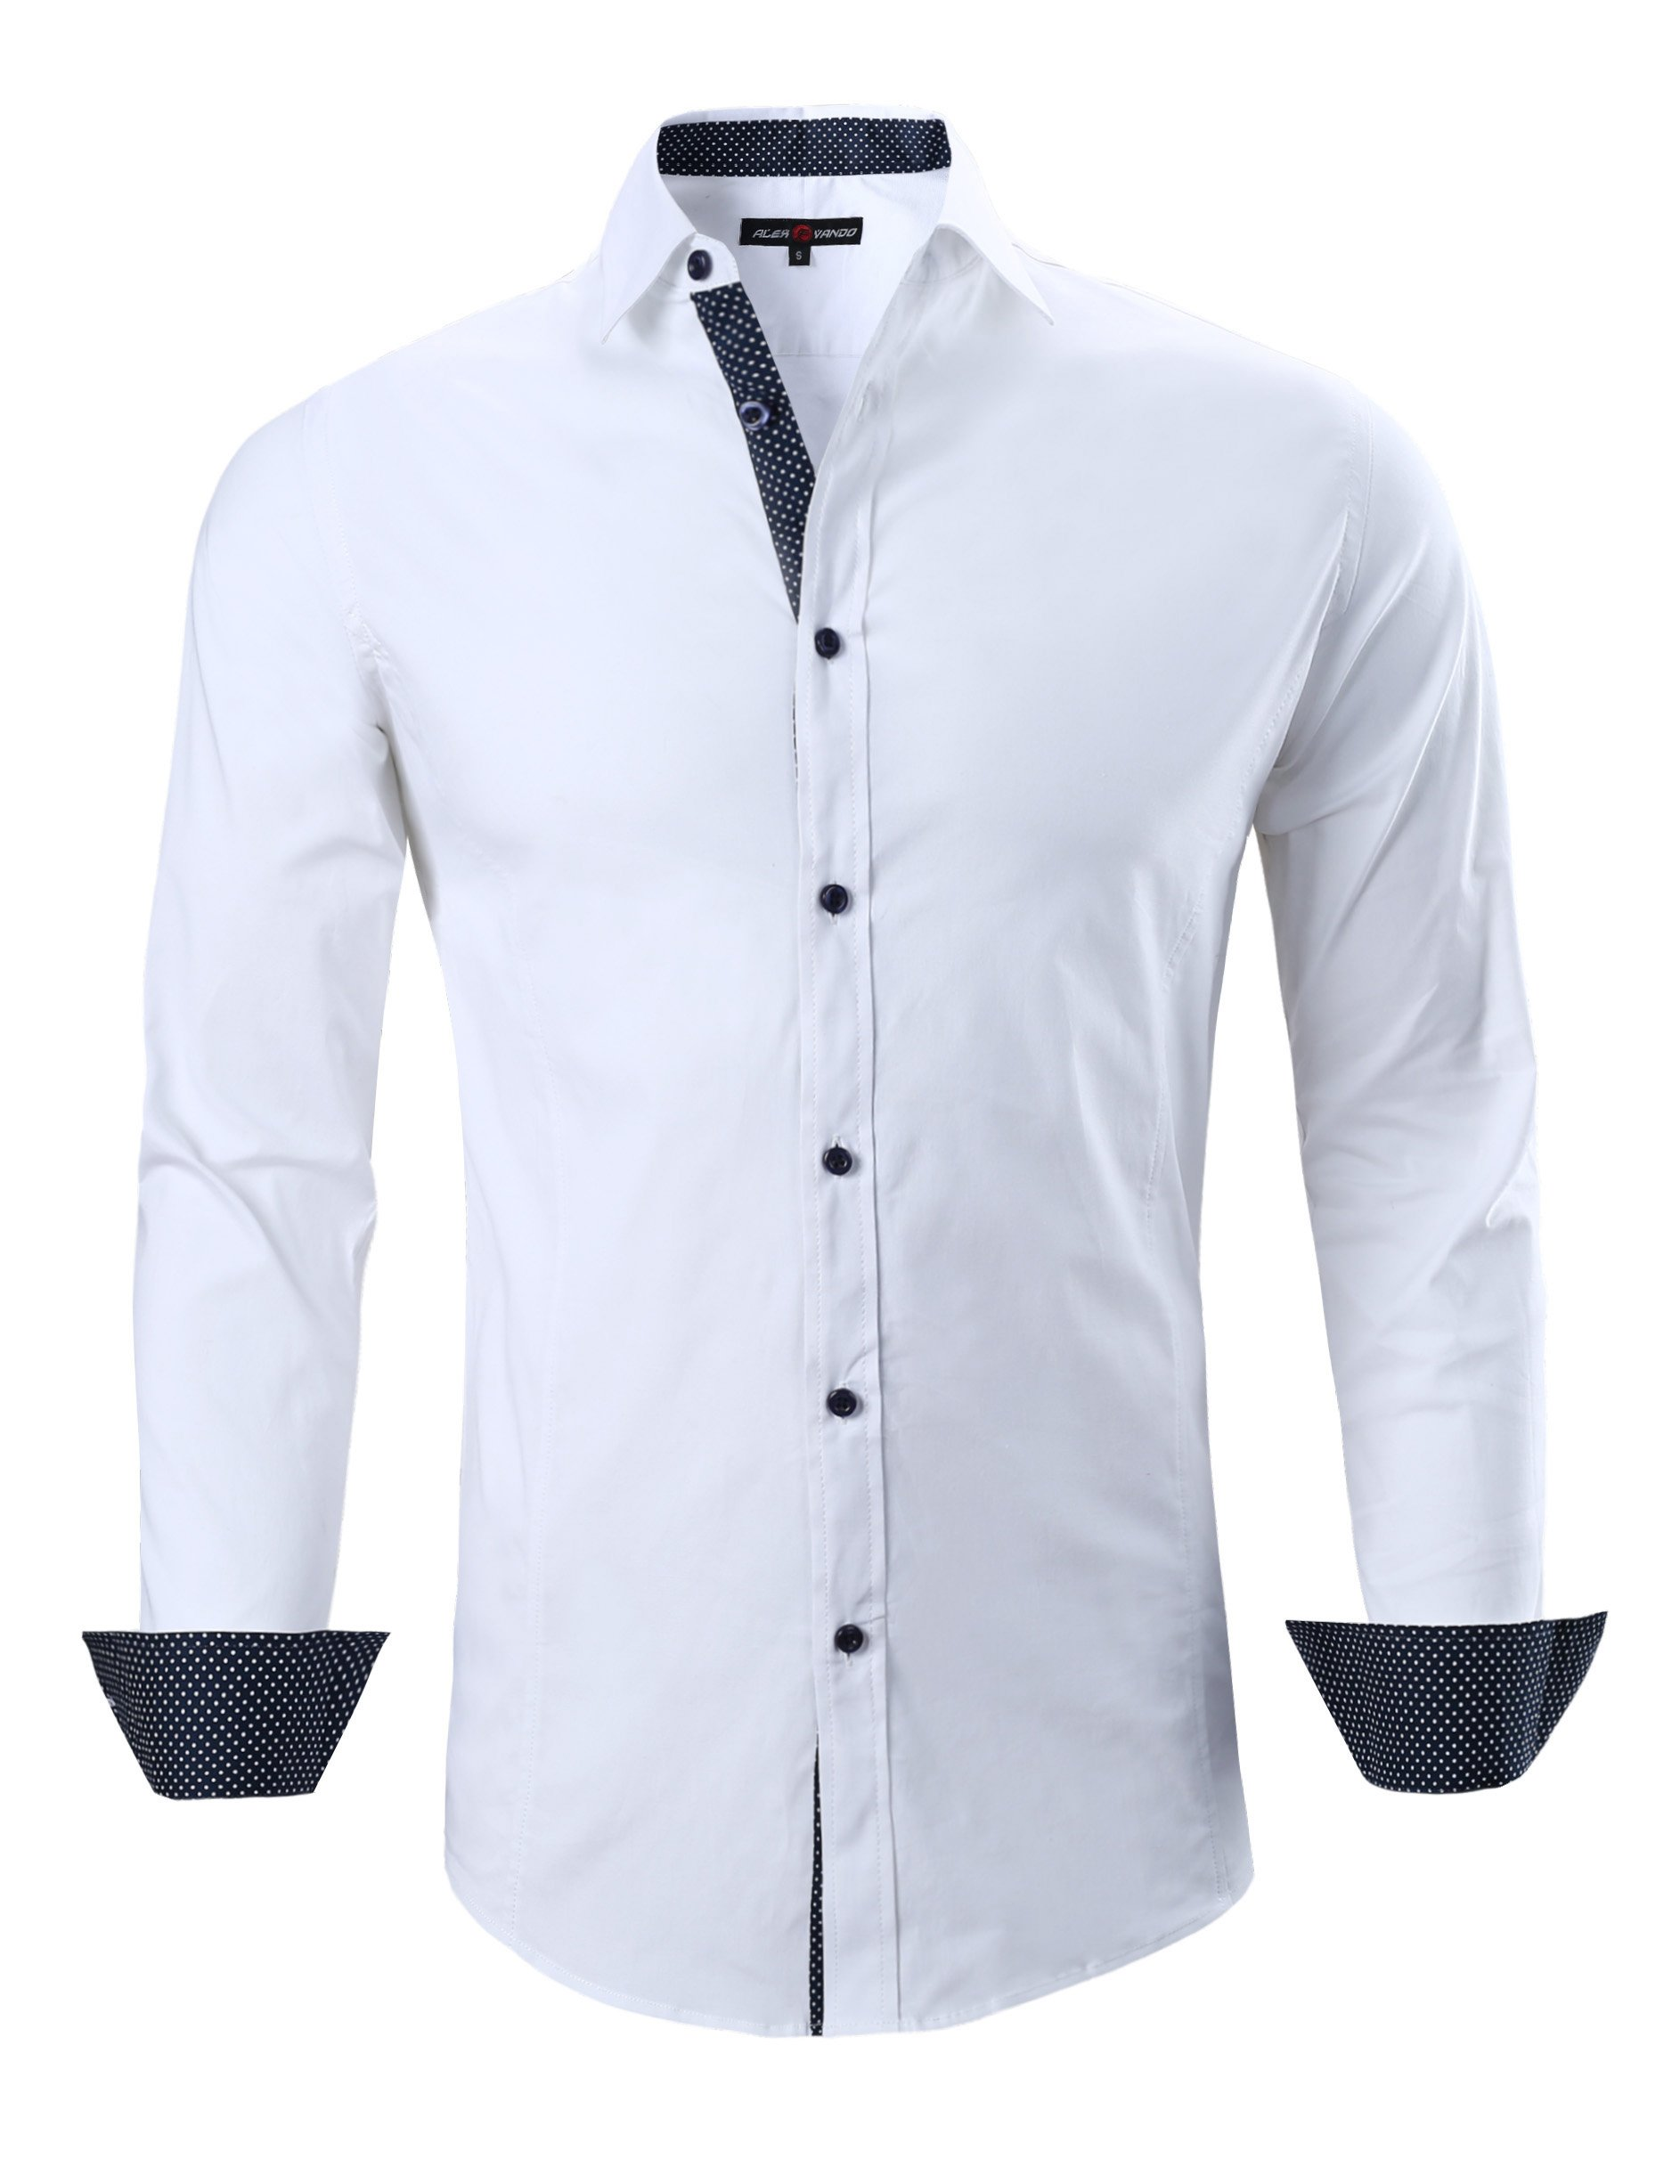 Joey CV Mens Casual Button Down Shirts Long Sleeve Regular Fit(White,Small)